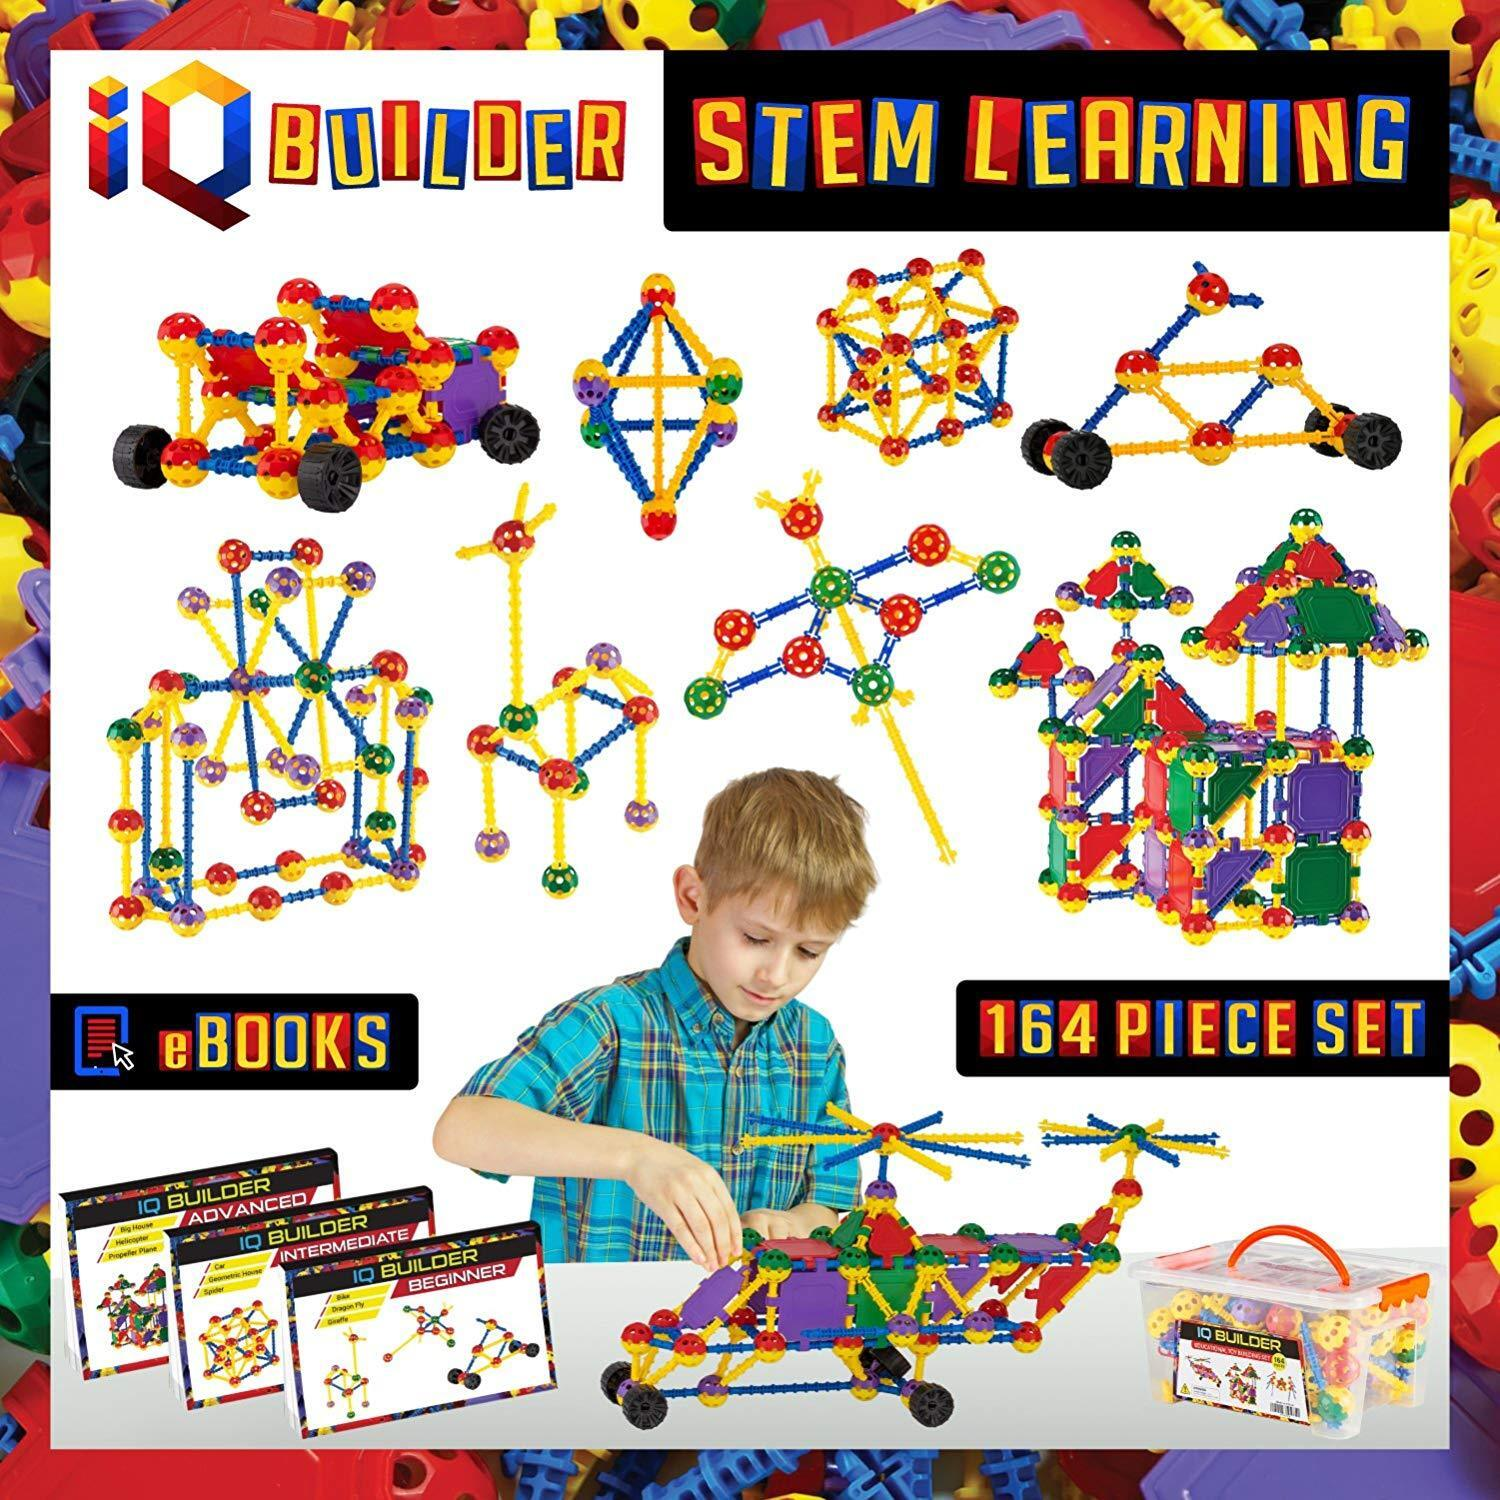 XMAS SALE Gift For 5 Year Old Boy Creative Construction Engineering Leaning Toys